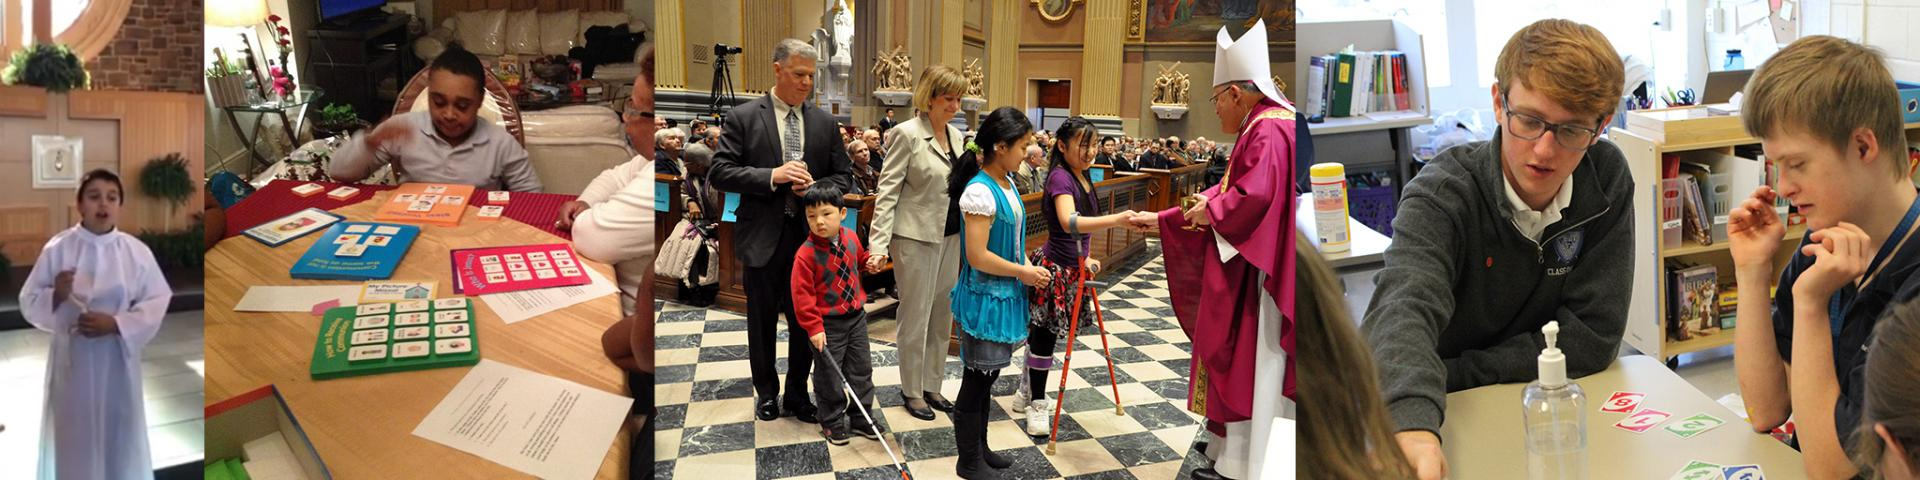 Persons with disabilities participating in the sacraments